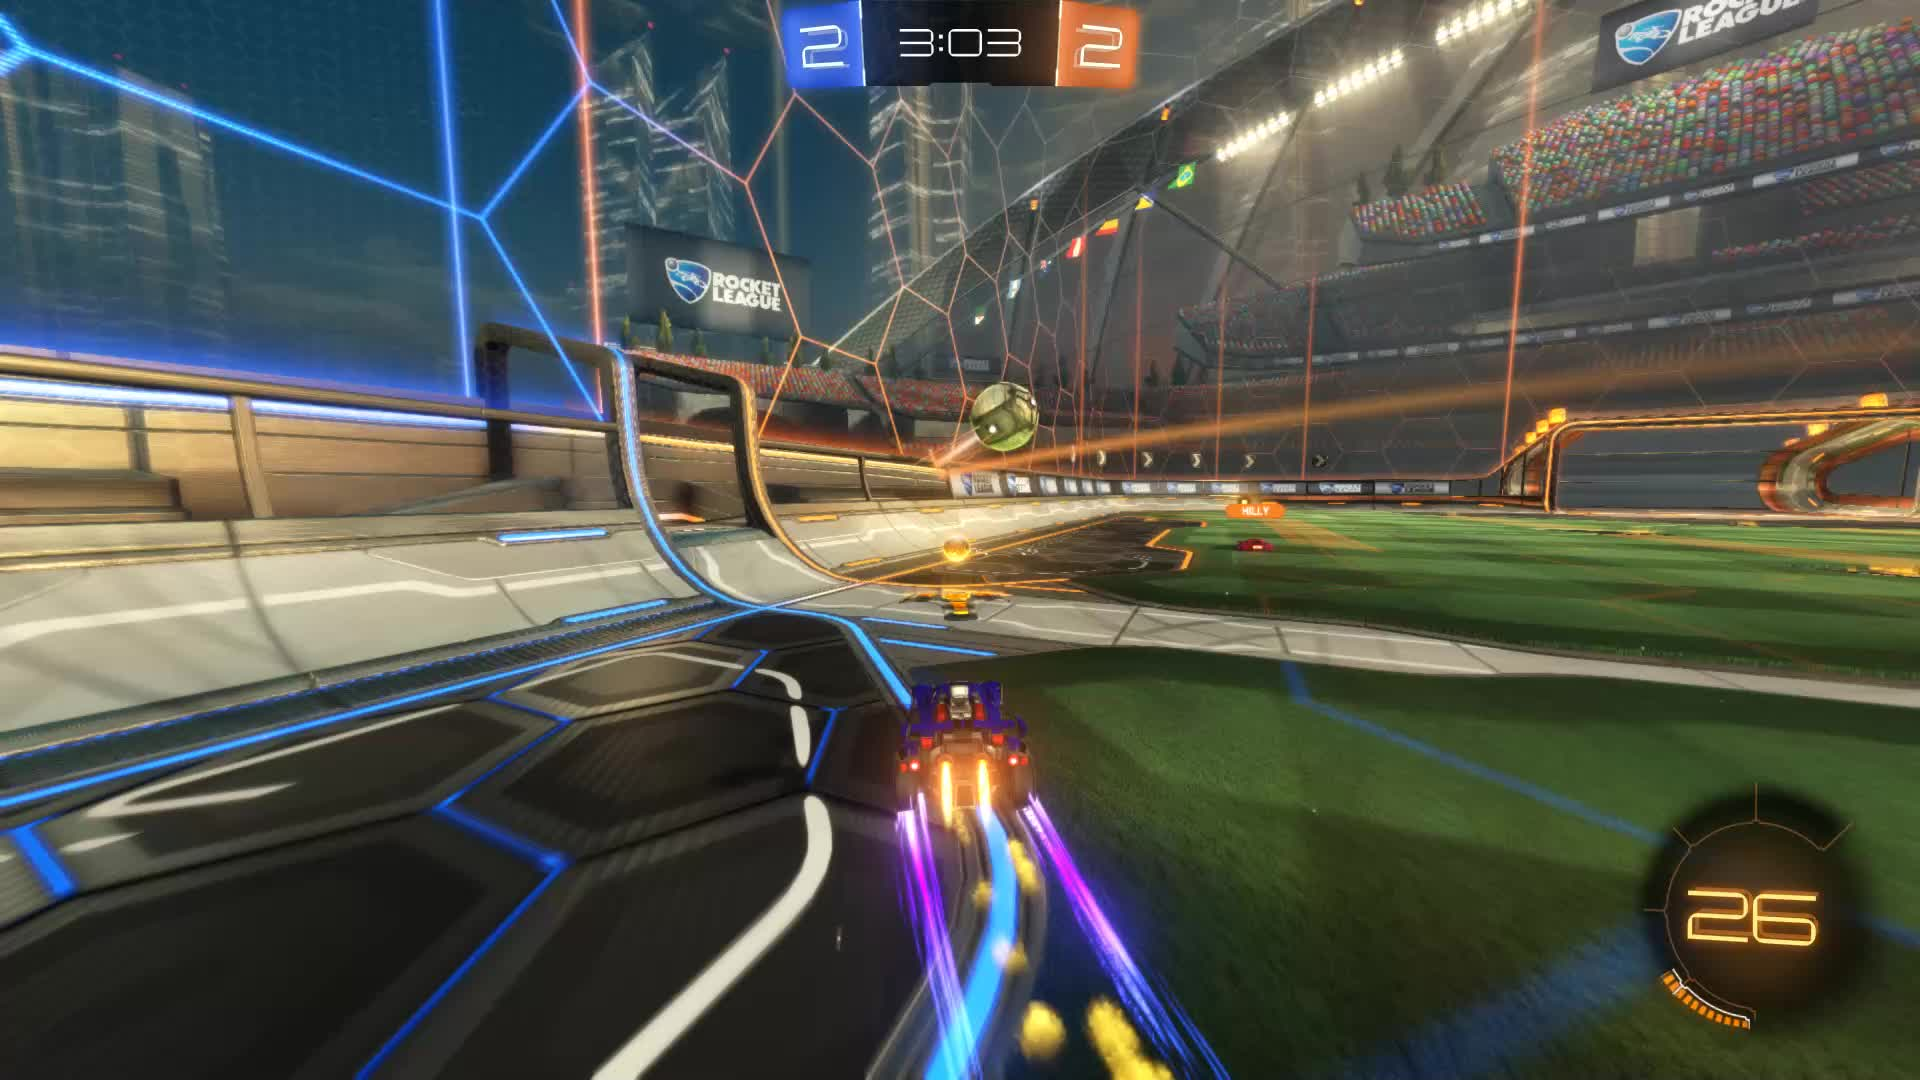 Assist, Gif Your Game, GifYourGame, Rocket League, RocketLeague, Squash, Assist 3: Squash GIFs